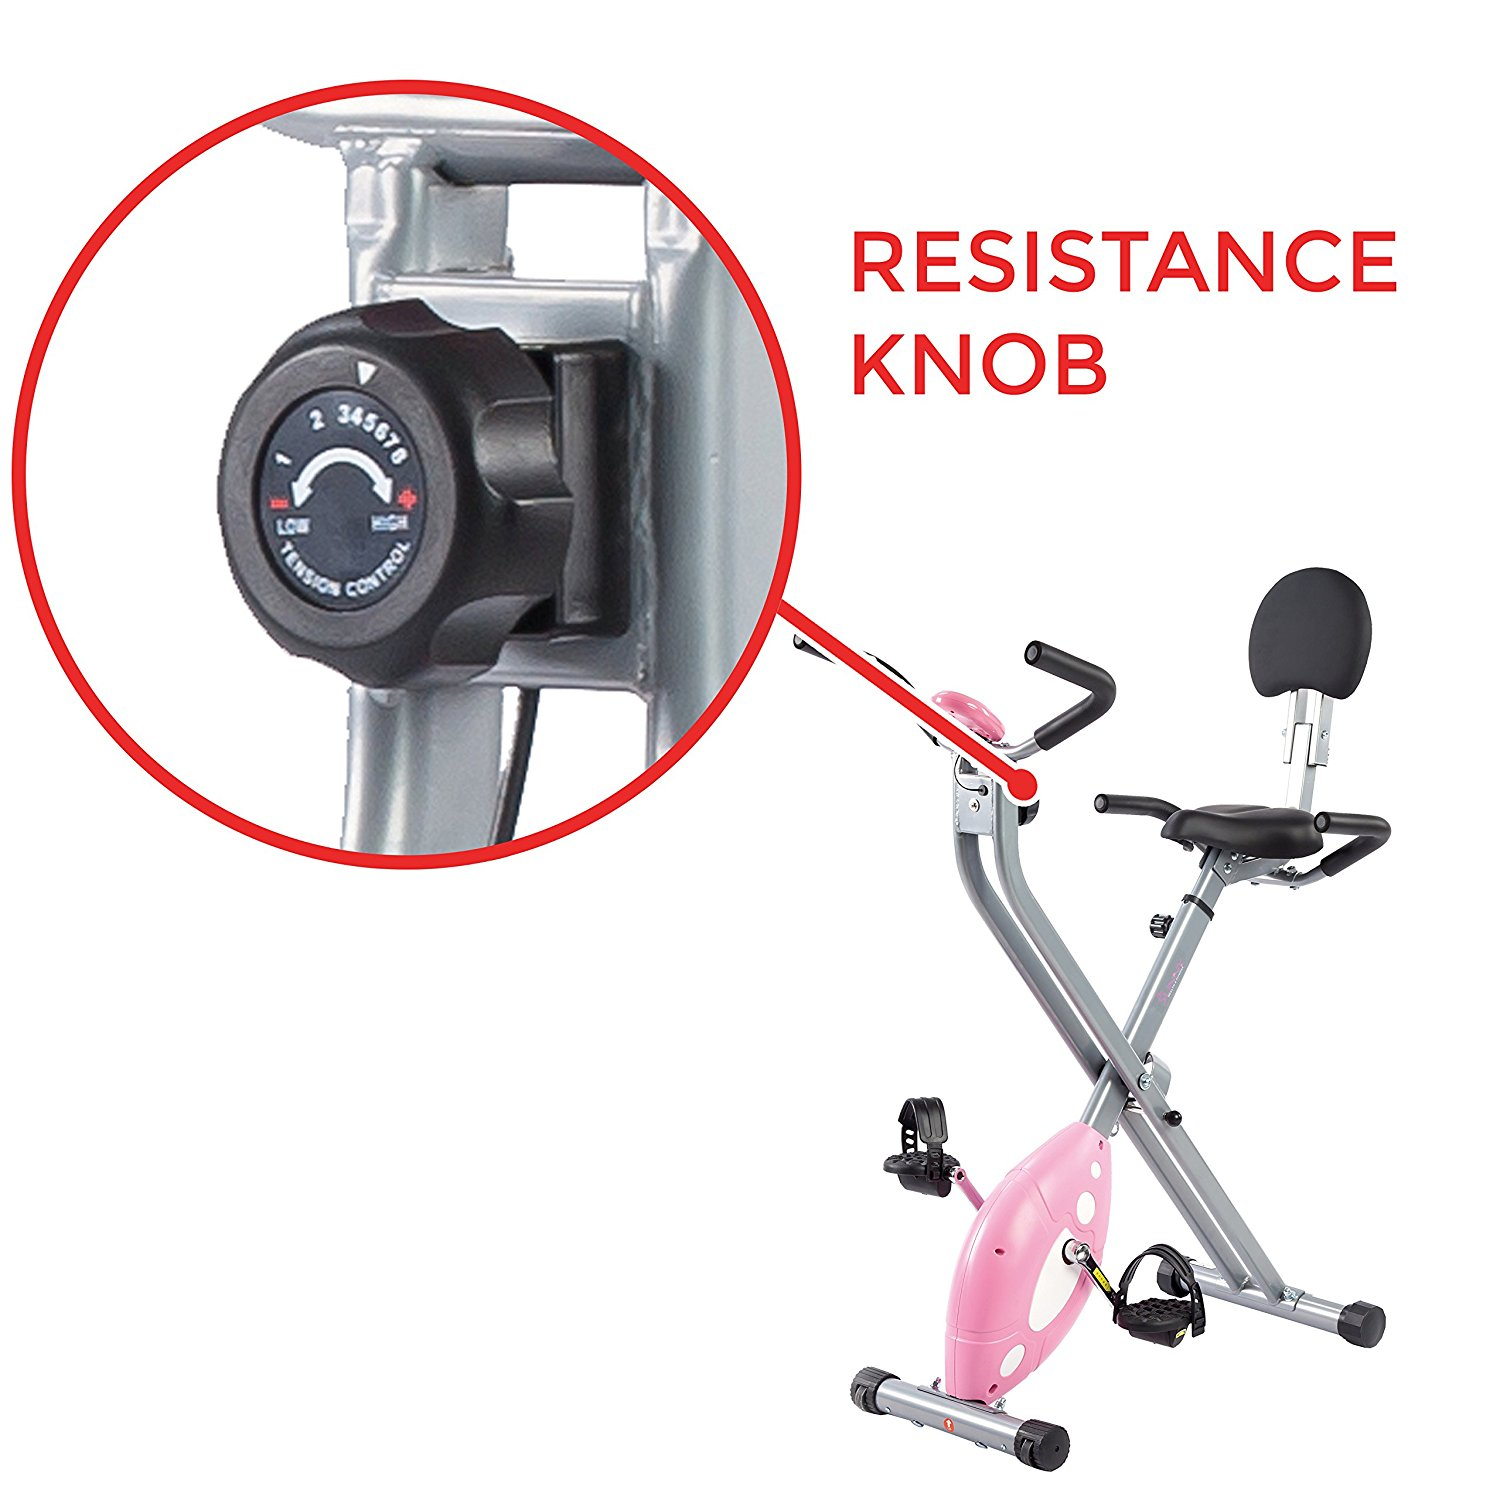 Sunny SF-RB1117 exercise bike review